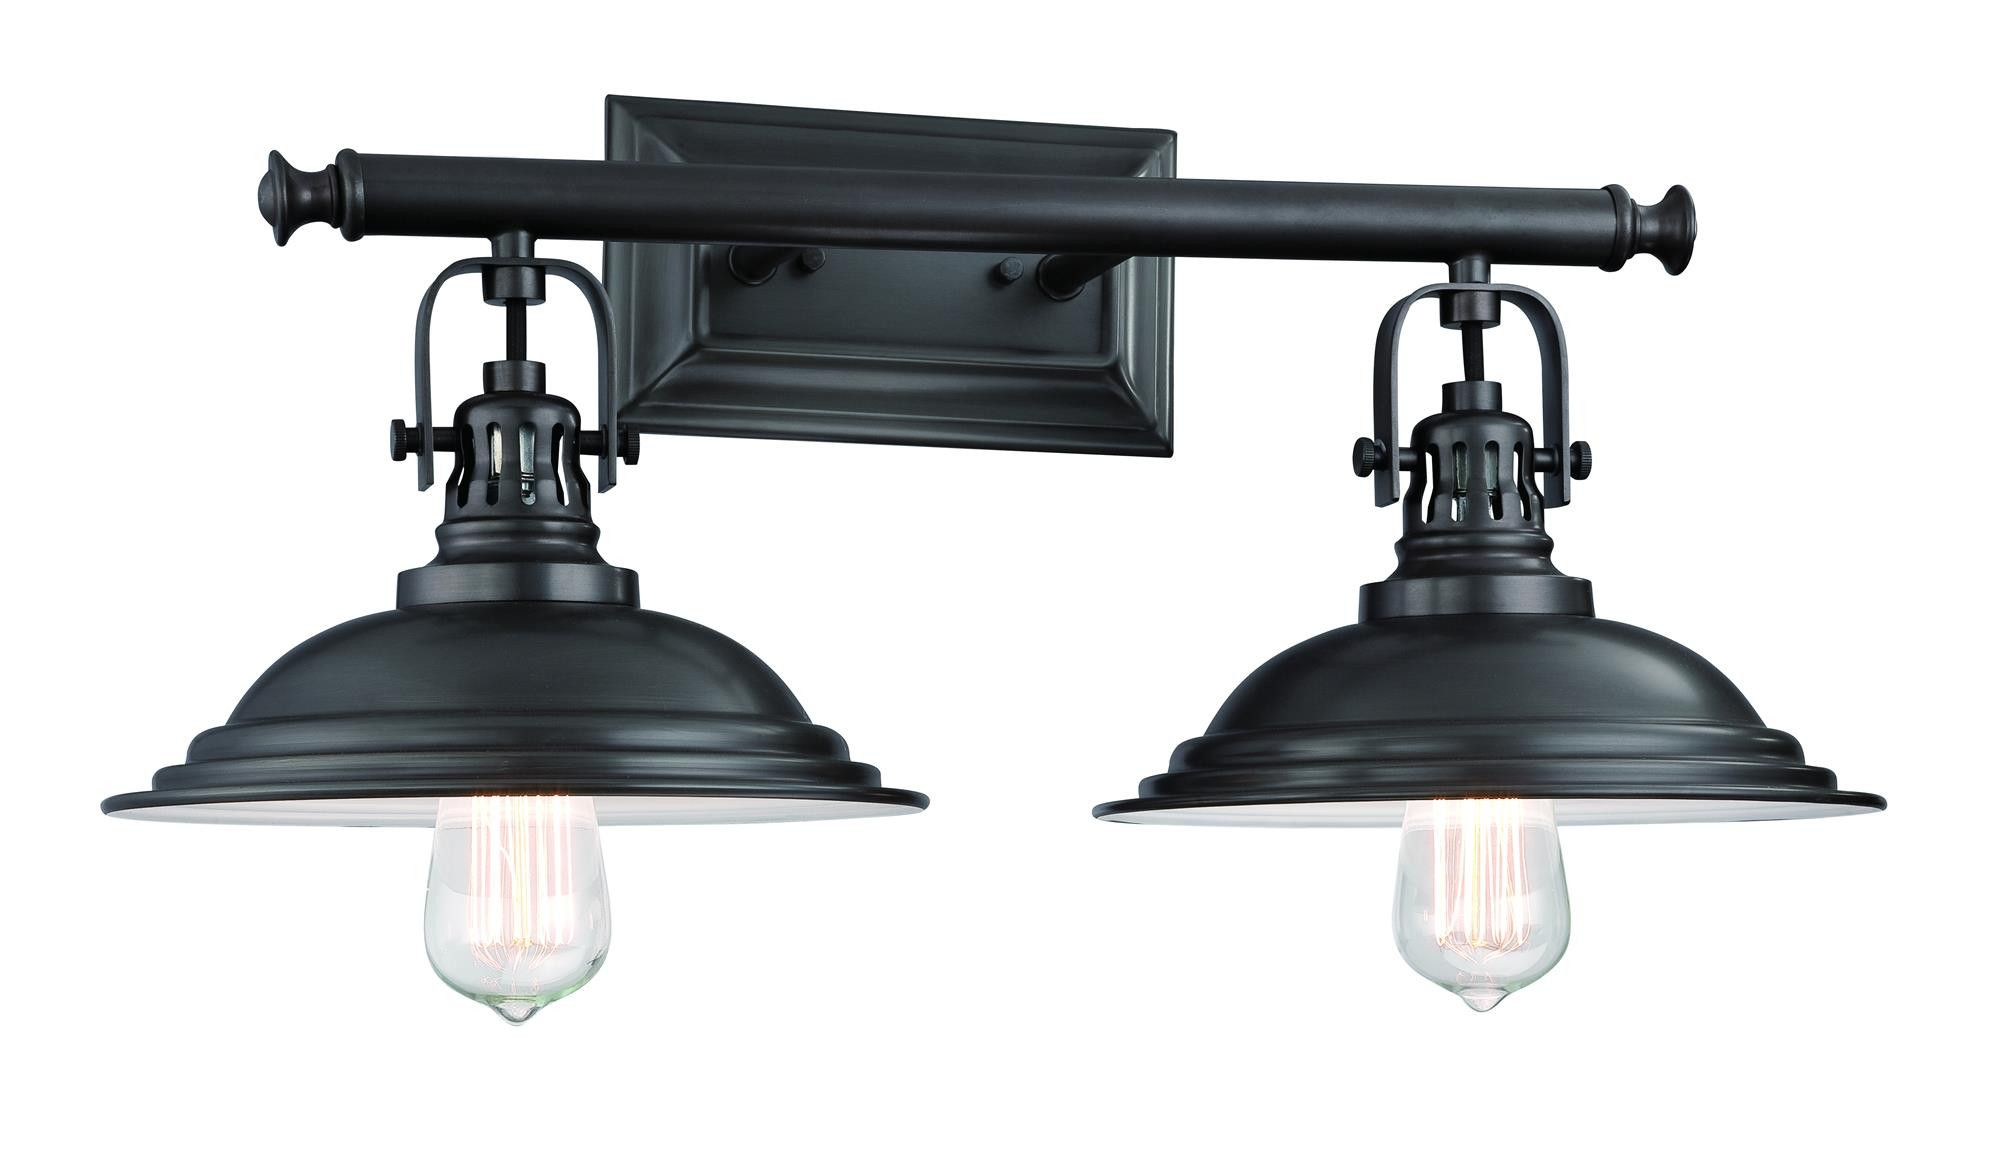 The Bowery 2 Light Vanity Fixture In 2020 Farmhouse Vanity Lights Vanity Lighting Vanity Light Fixtures